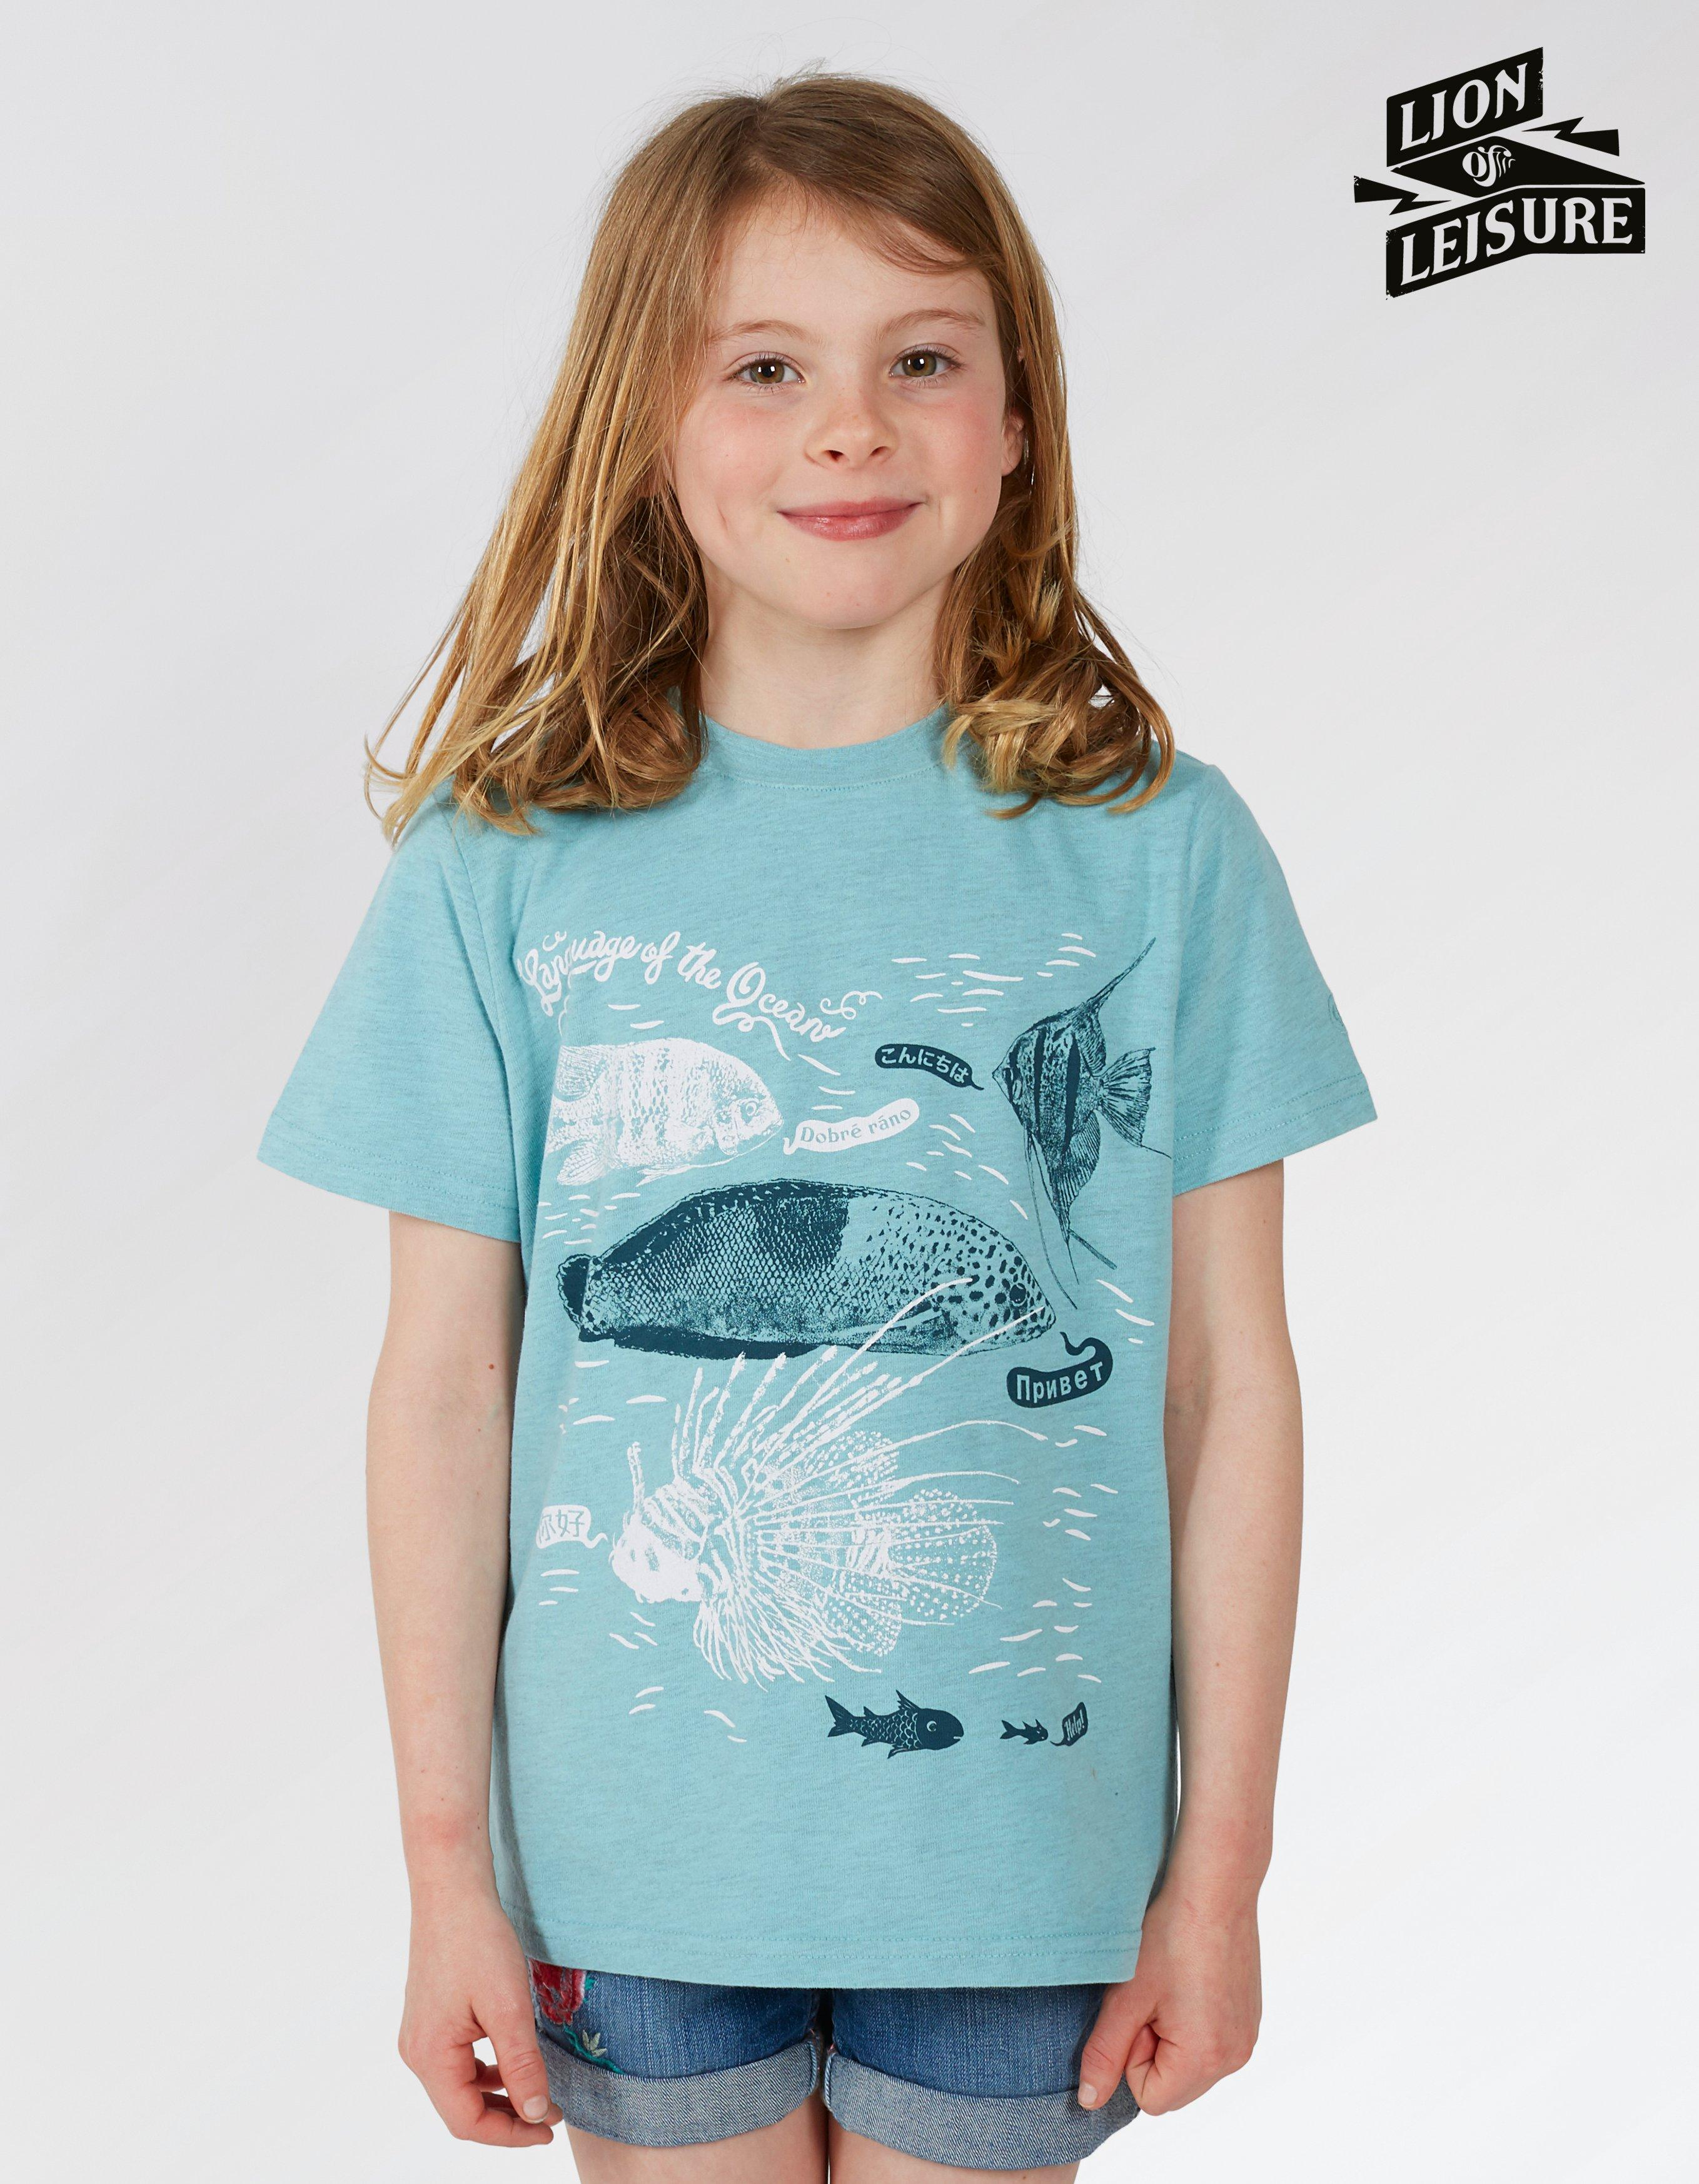 Lion of Leisure Fish T Shirt